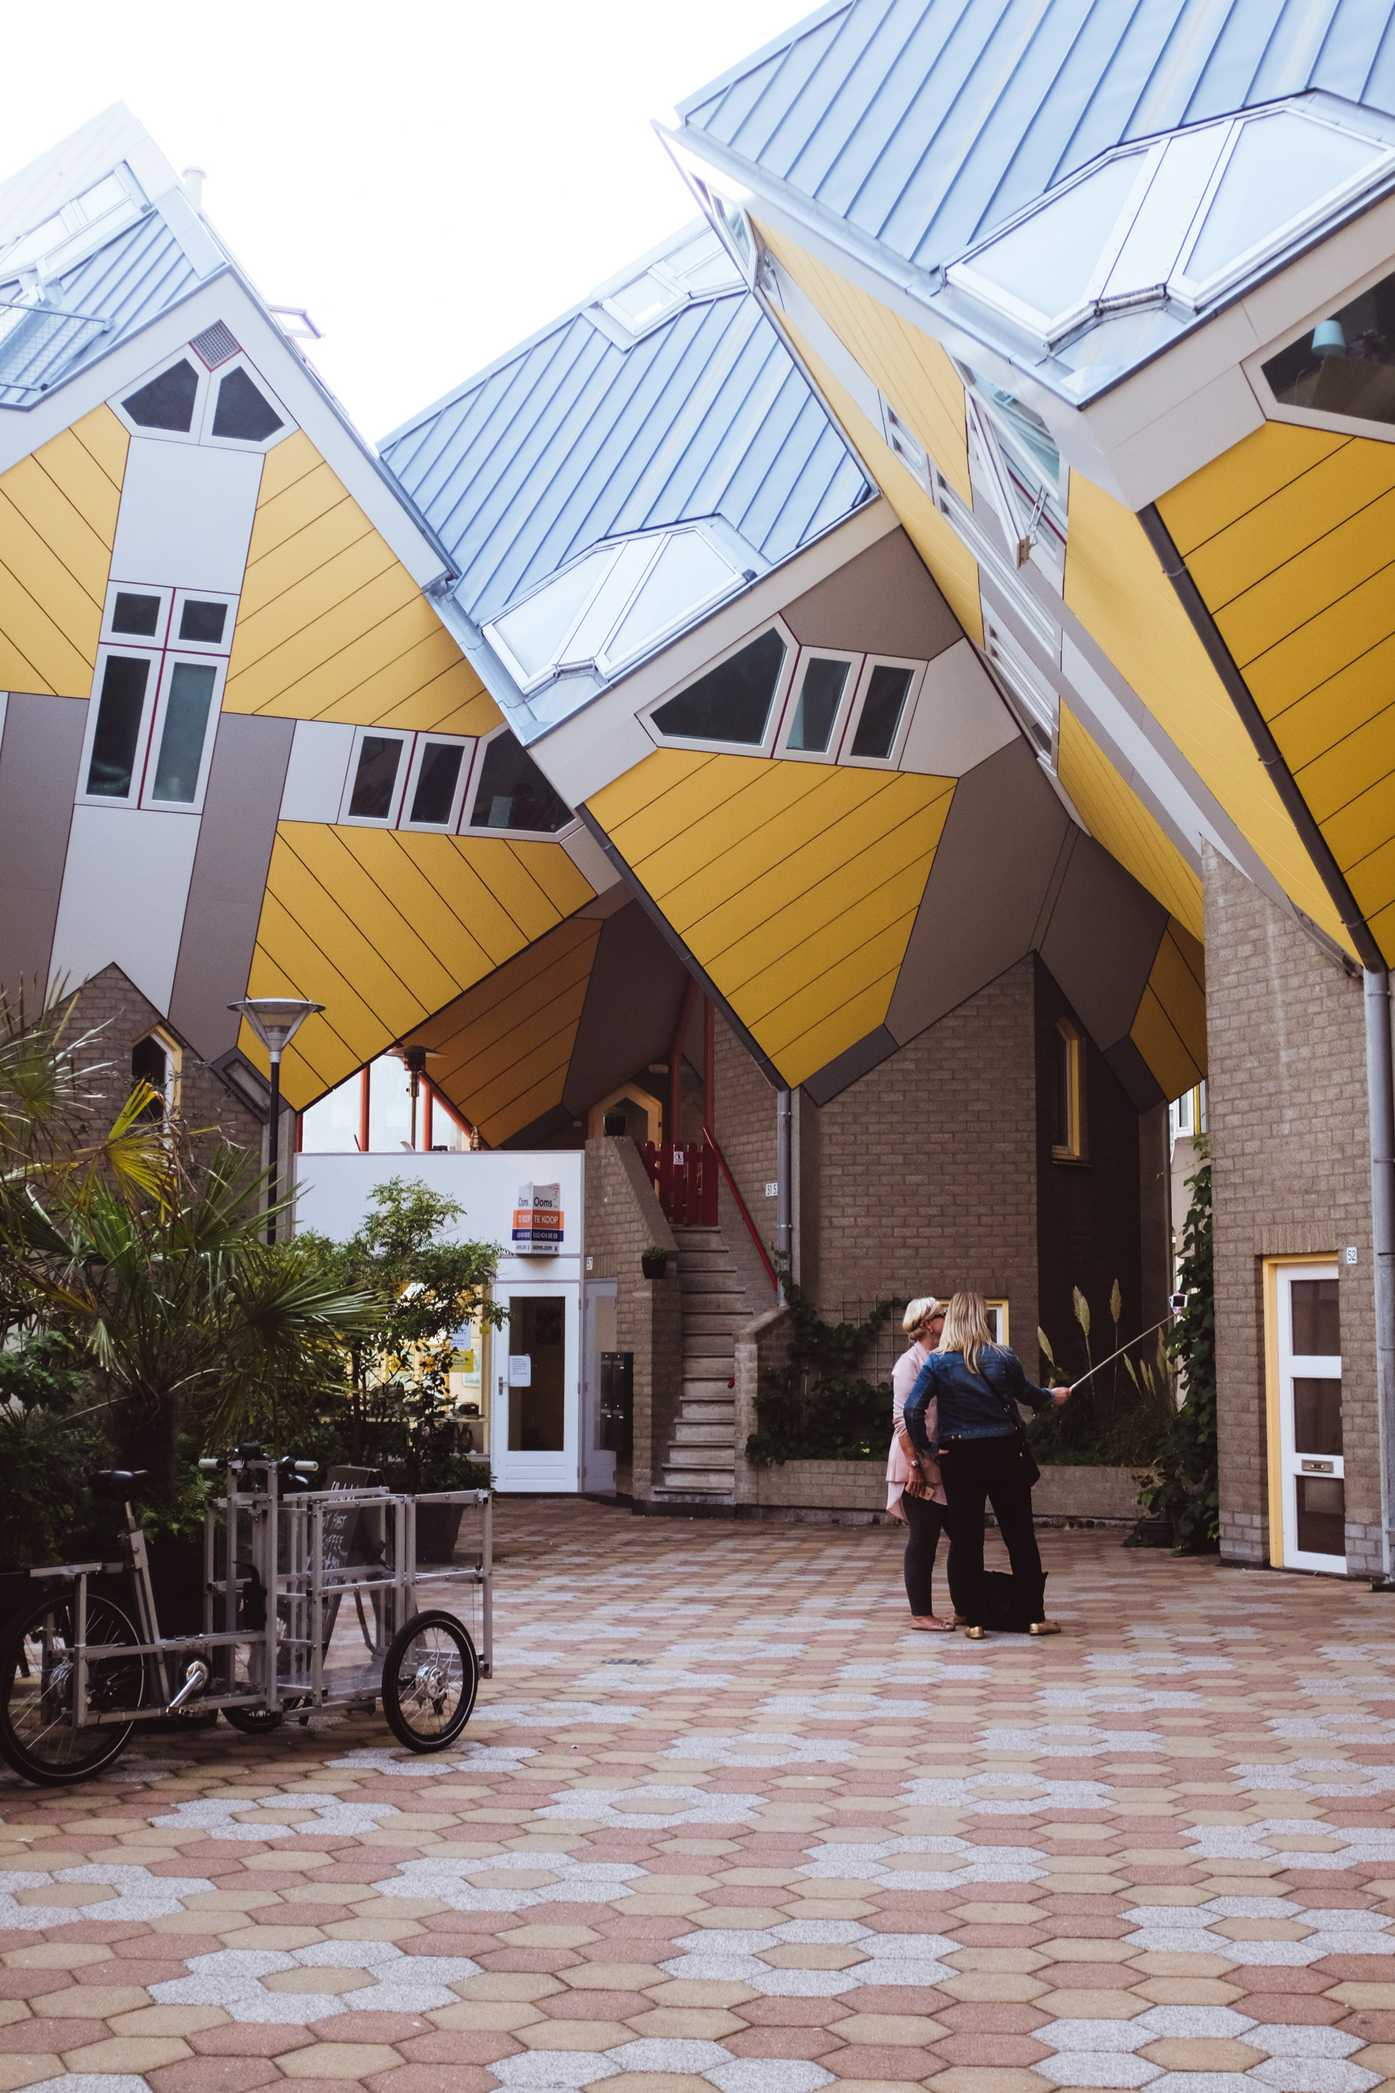 Two women take a selfie in the Cube Houses of Rotterdam